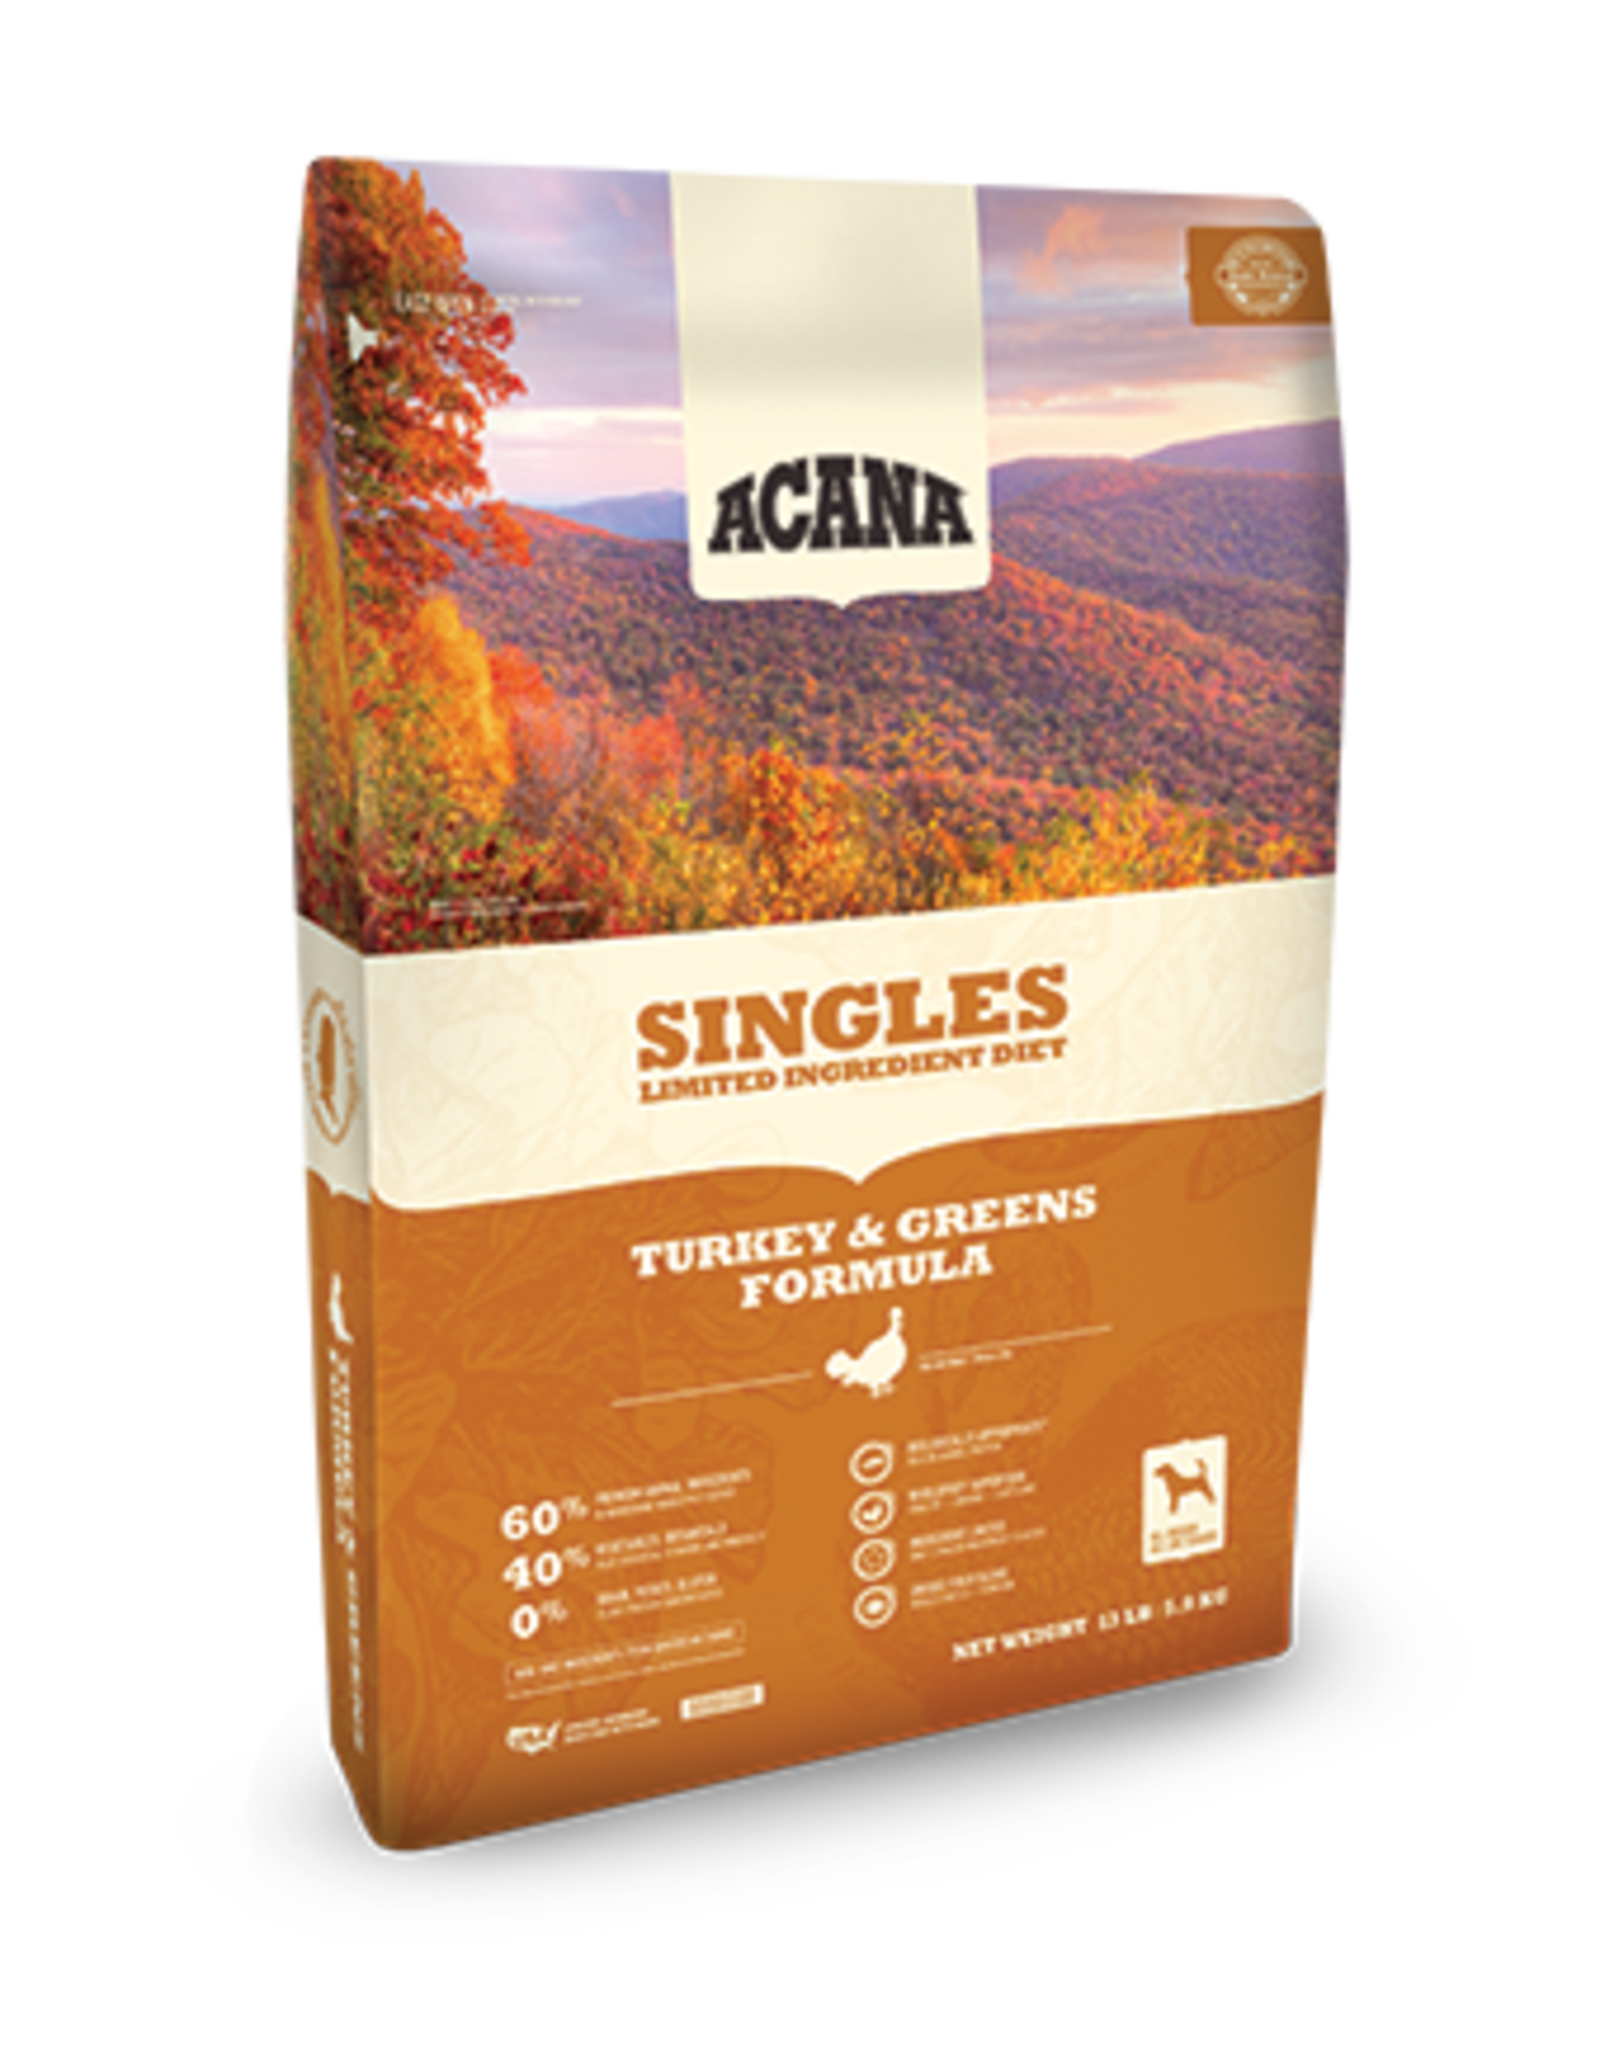 Acana Acana Singles Dog Food Turkey & Greens